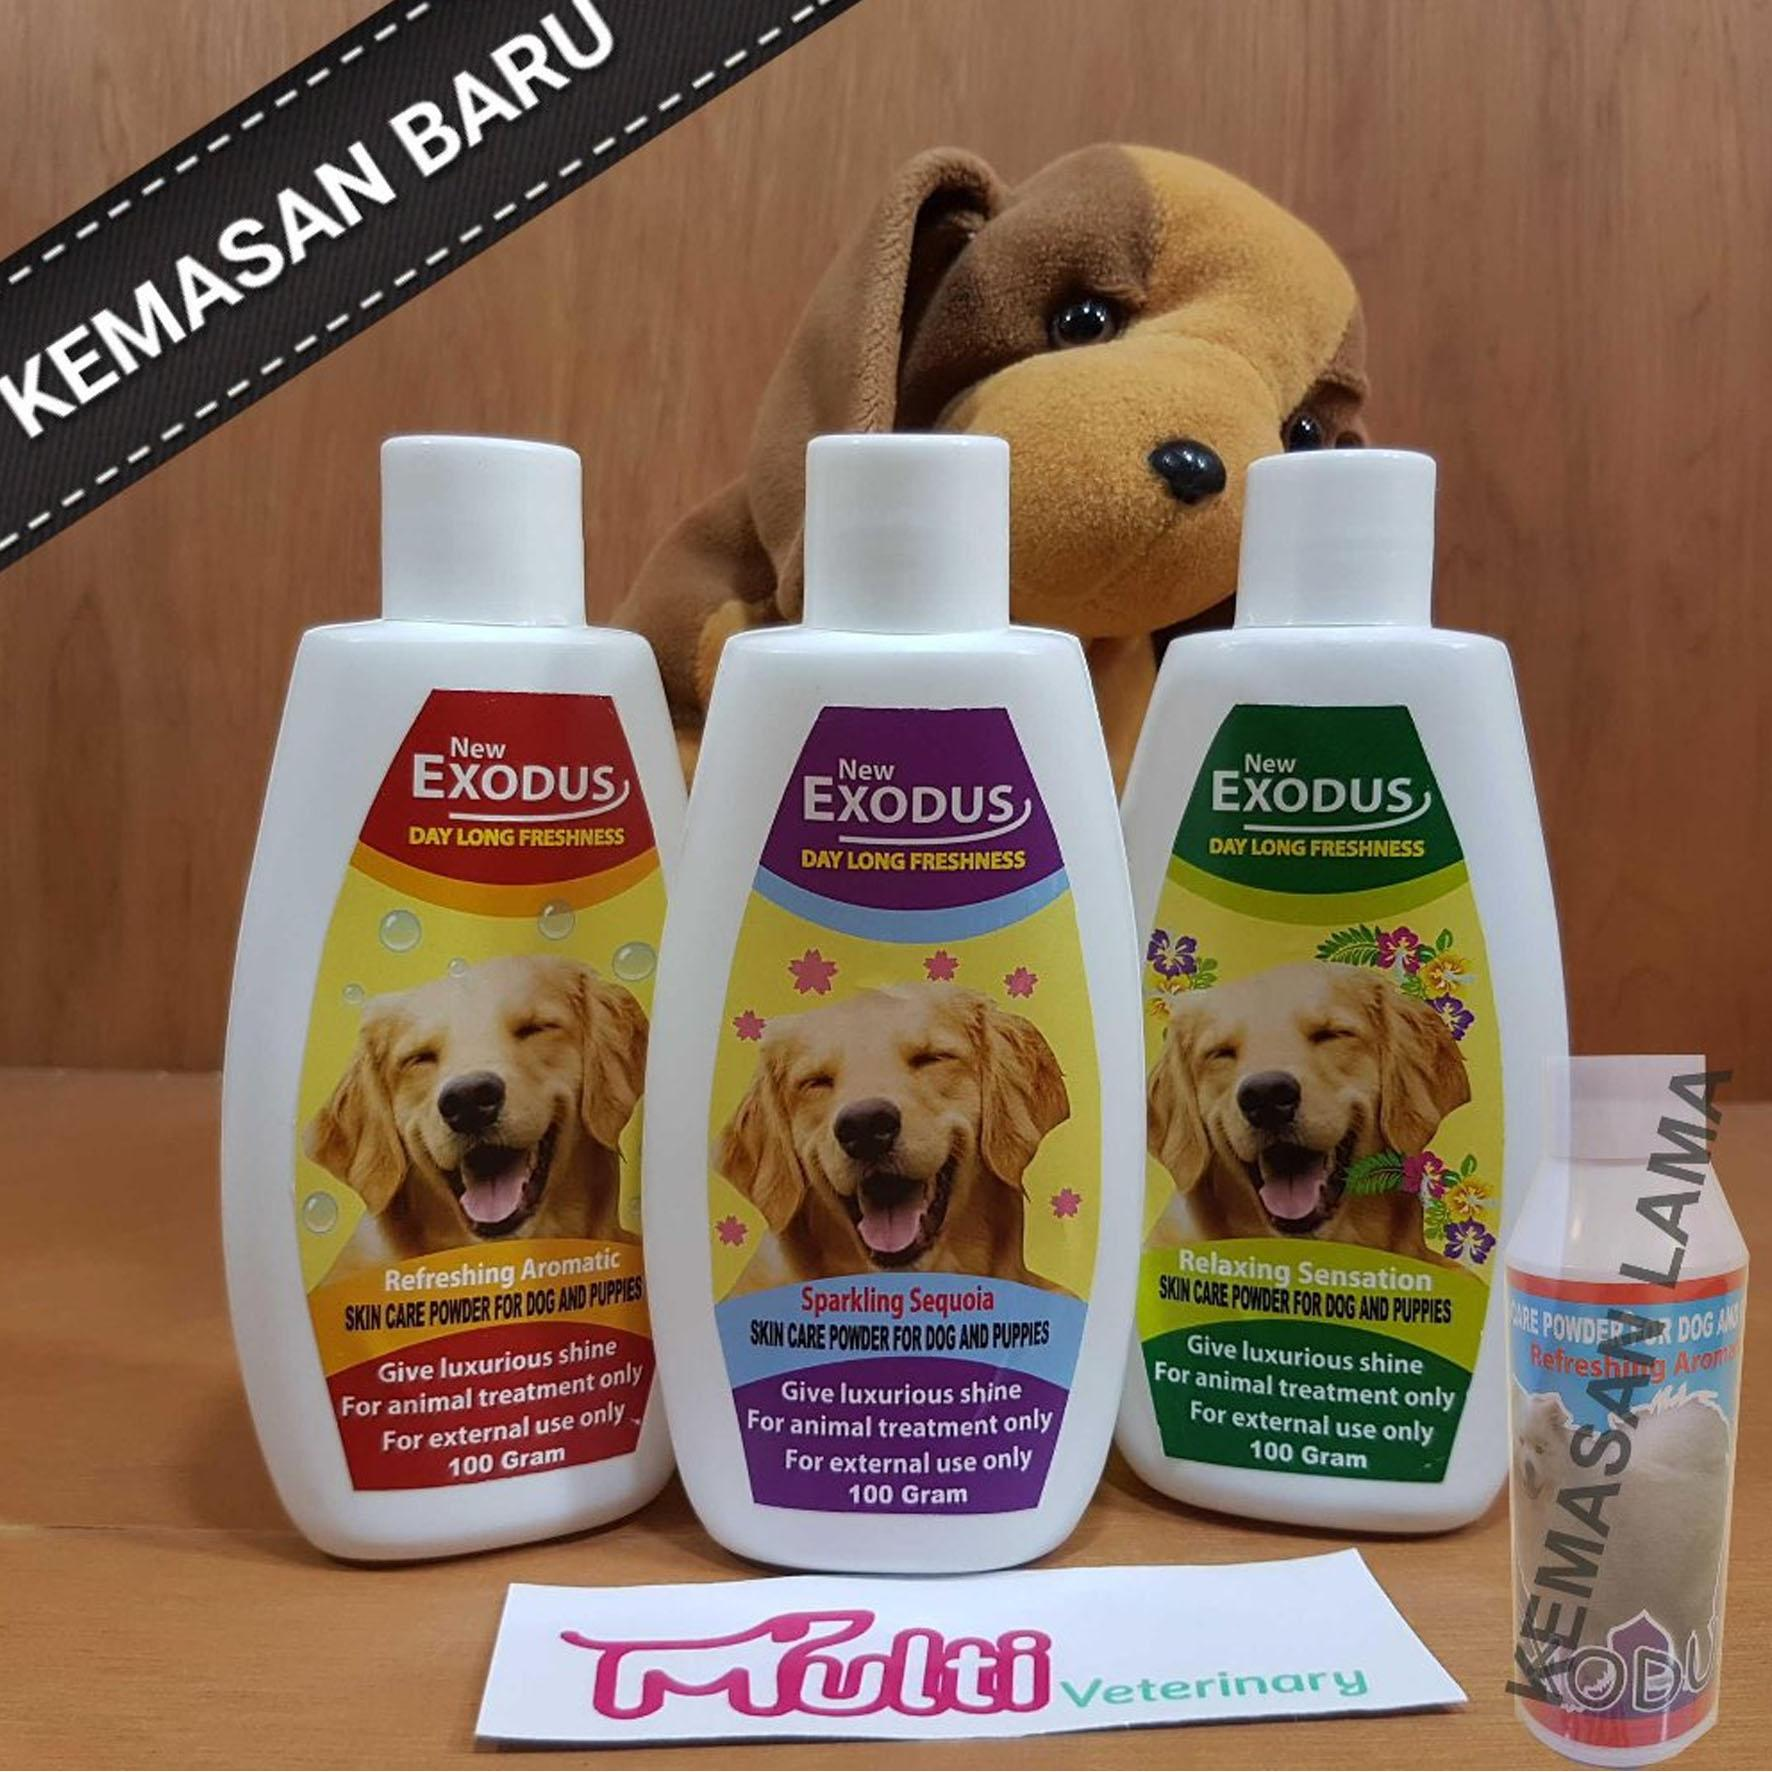 Exodus Bedak Anjing Talc Skin Care Powder For Dog And Puppies By Multi Veterinary